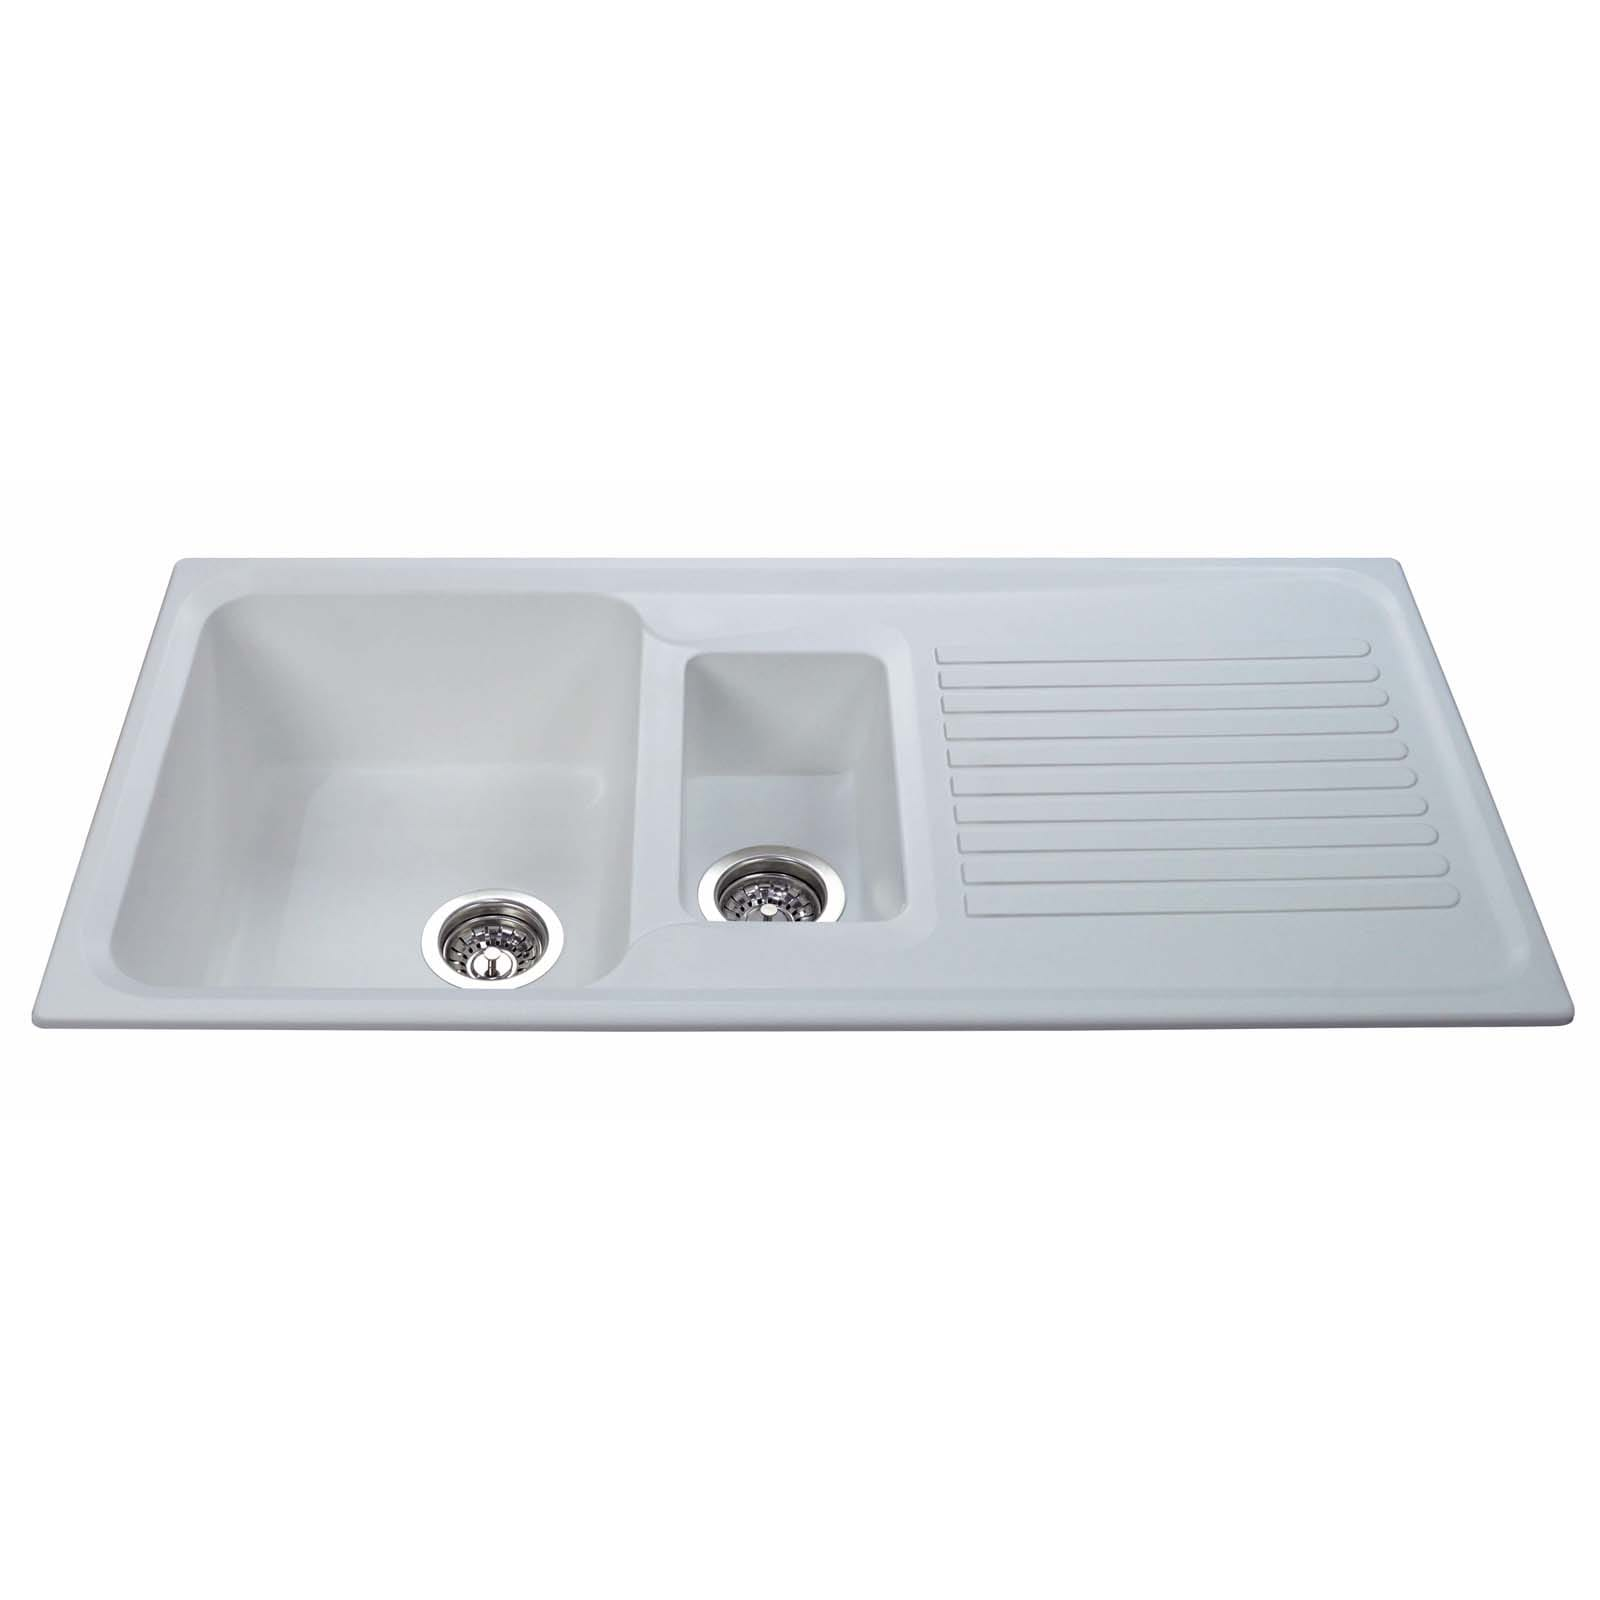 CDA AS2WH 1.5 Bowl Reversible Composite Kitchen Sink In White